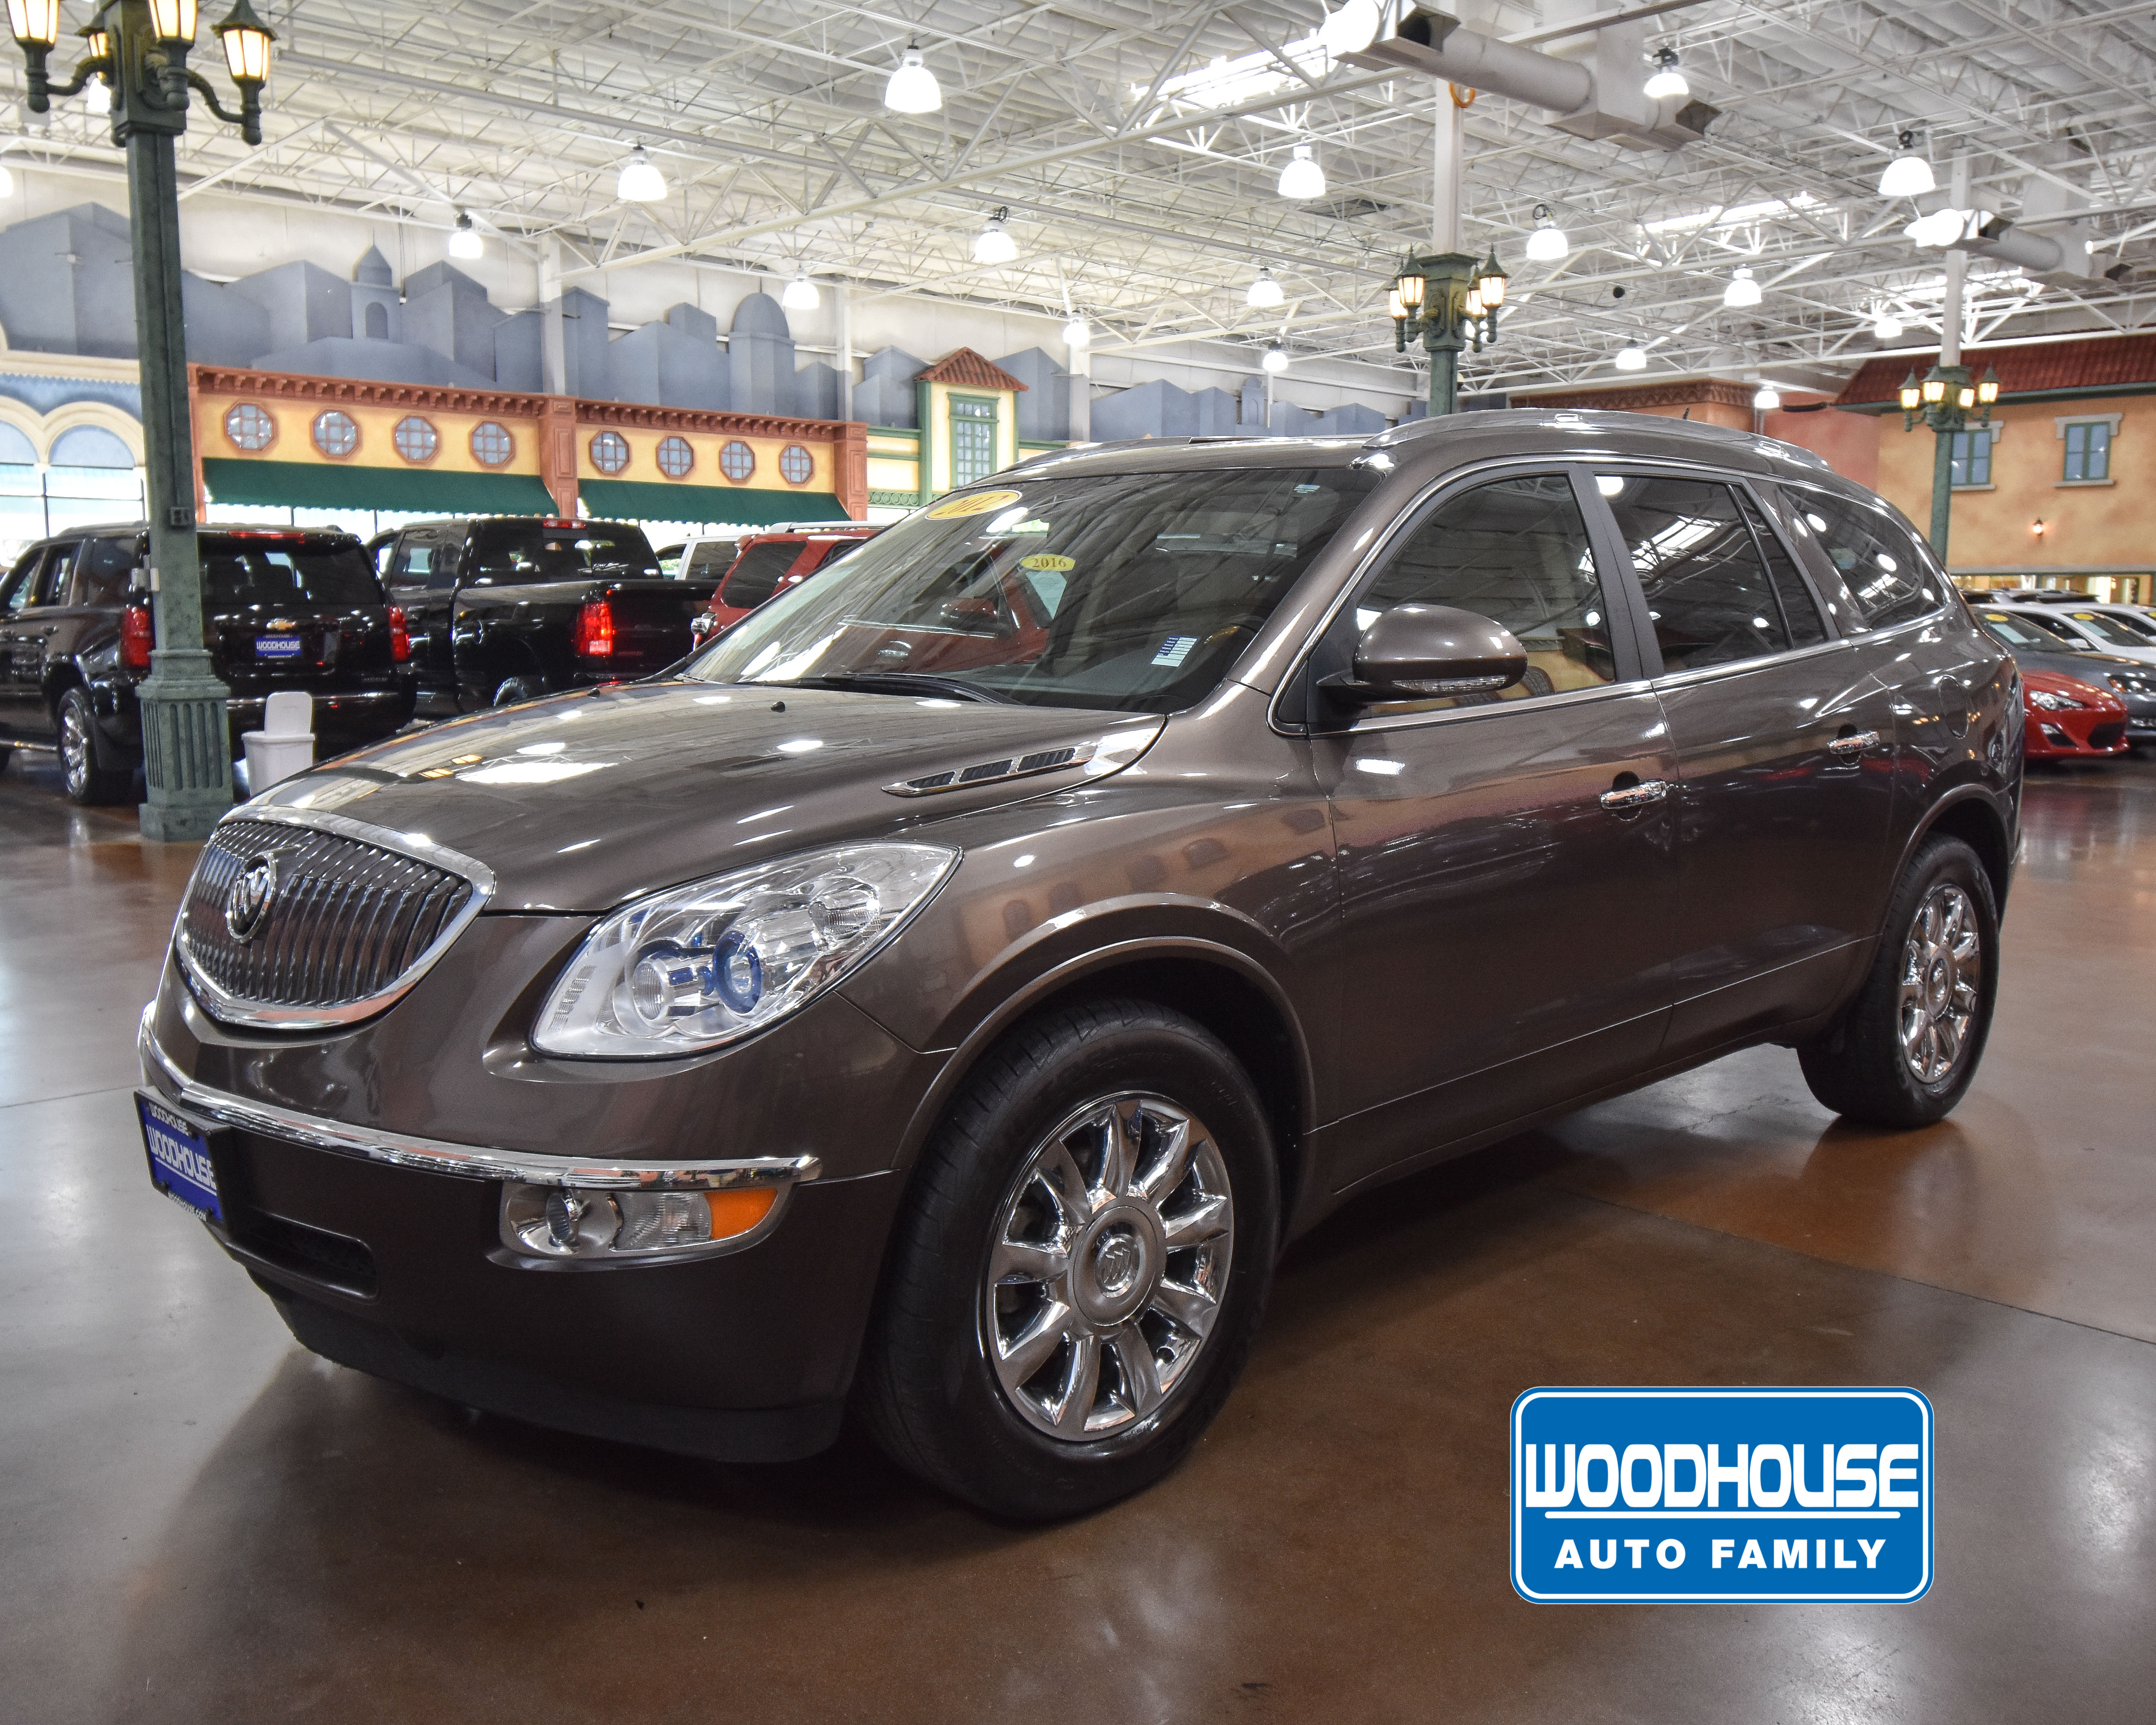 2012 Buick Enclave For Sale >> Woodhouse Used 2012 Buick Enclave For Sale Buick Gmc Omaha